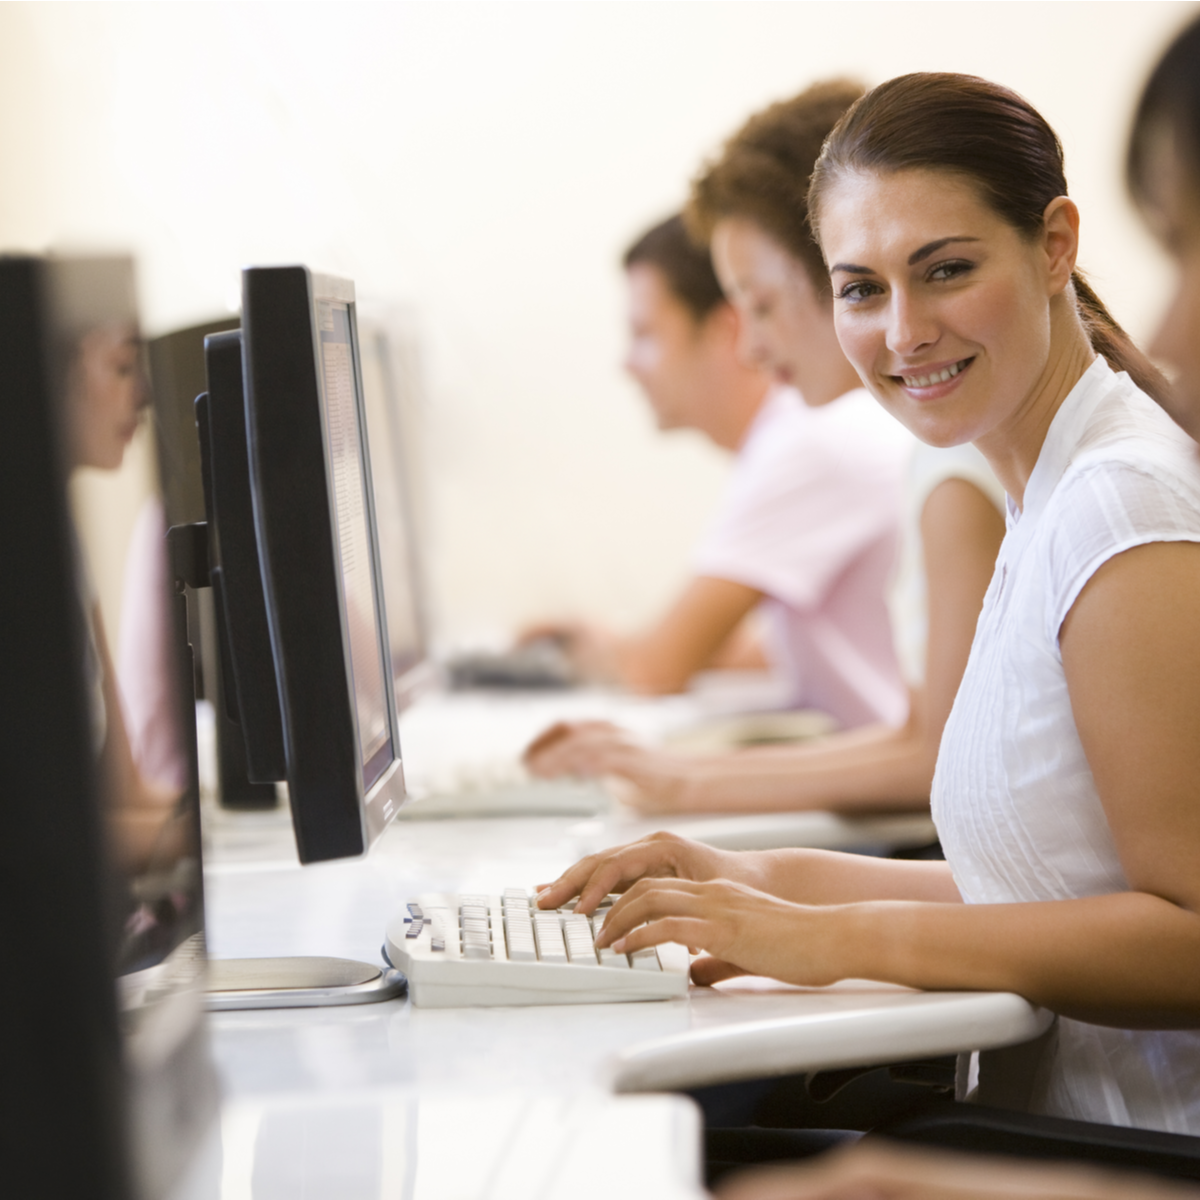 woman smiling typing at computer